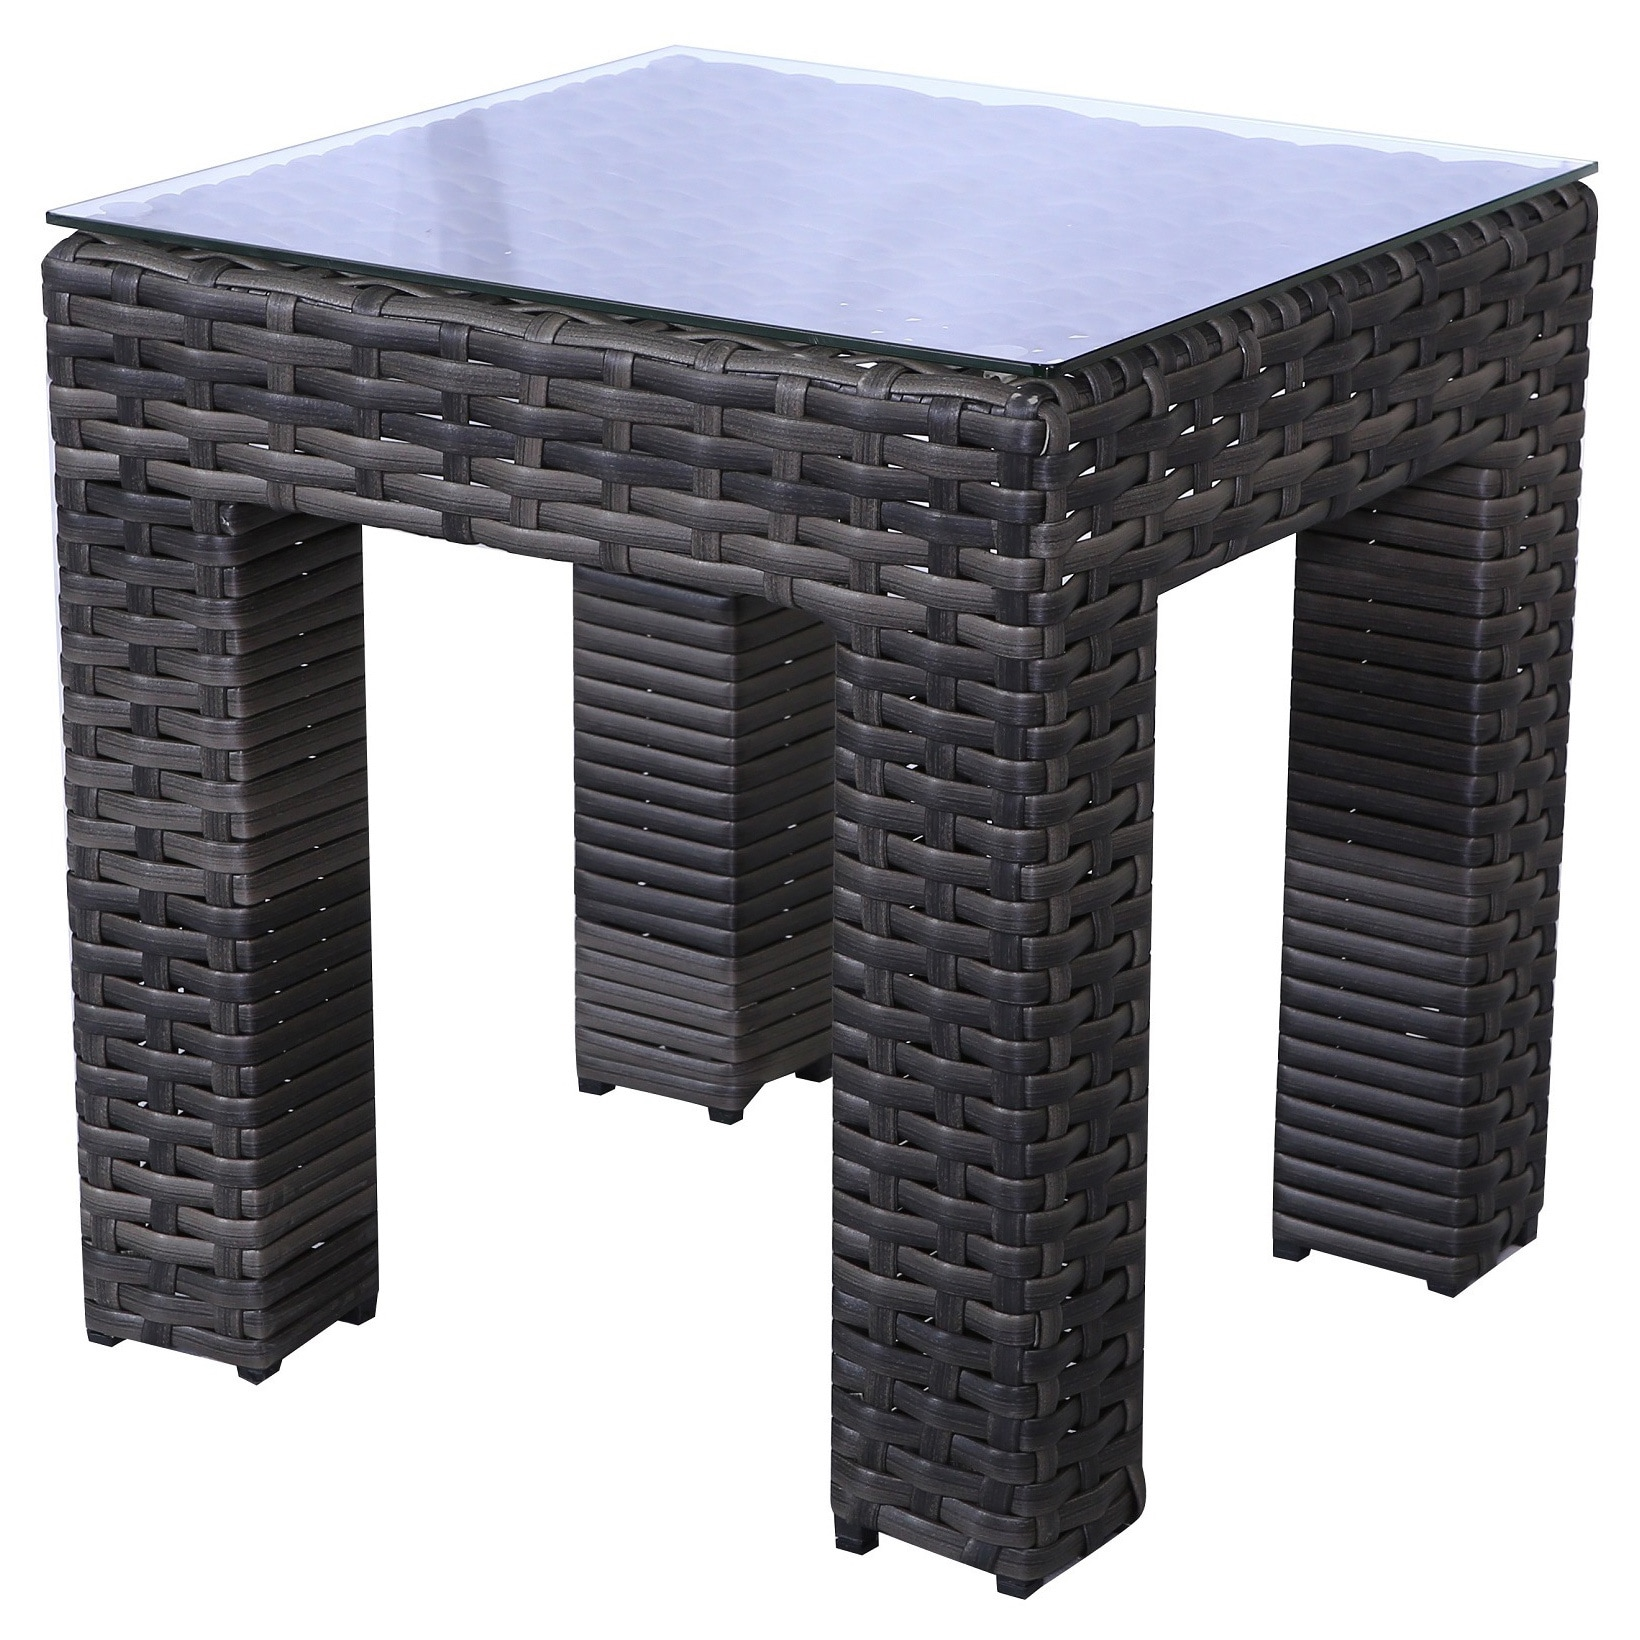 Shop Bora Bora Grey Wicker Rattan End Table With Glass Top   Free Shipping  Today   Overstock   11961509